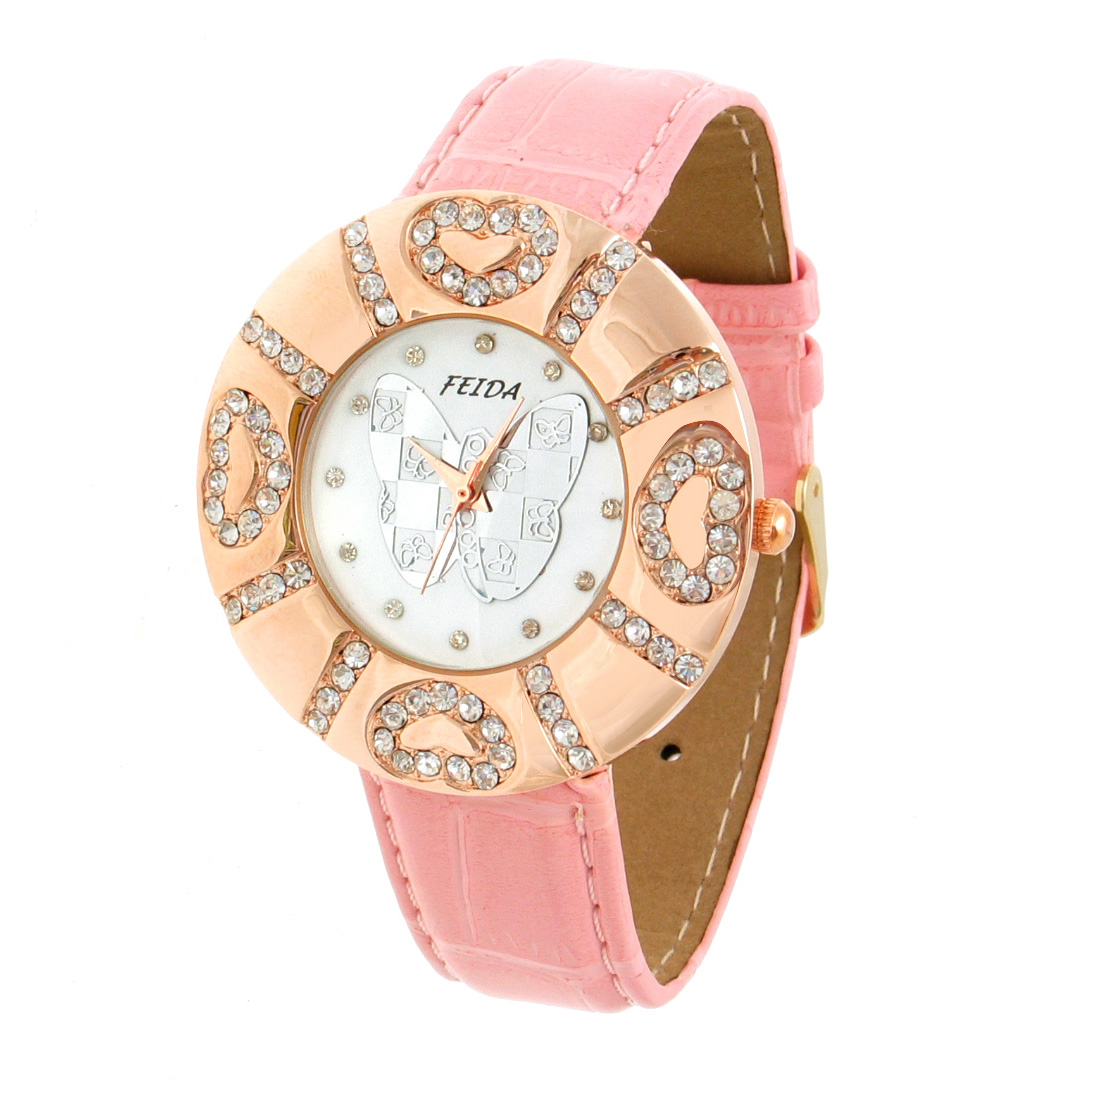 Radiant Love Butterfly Crystal Pink Strap Quartz Watch